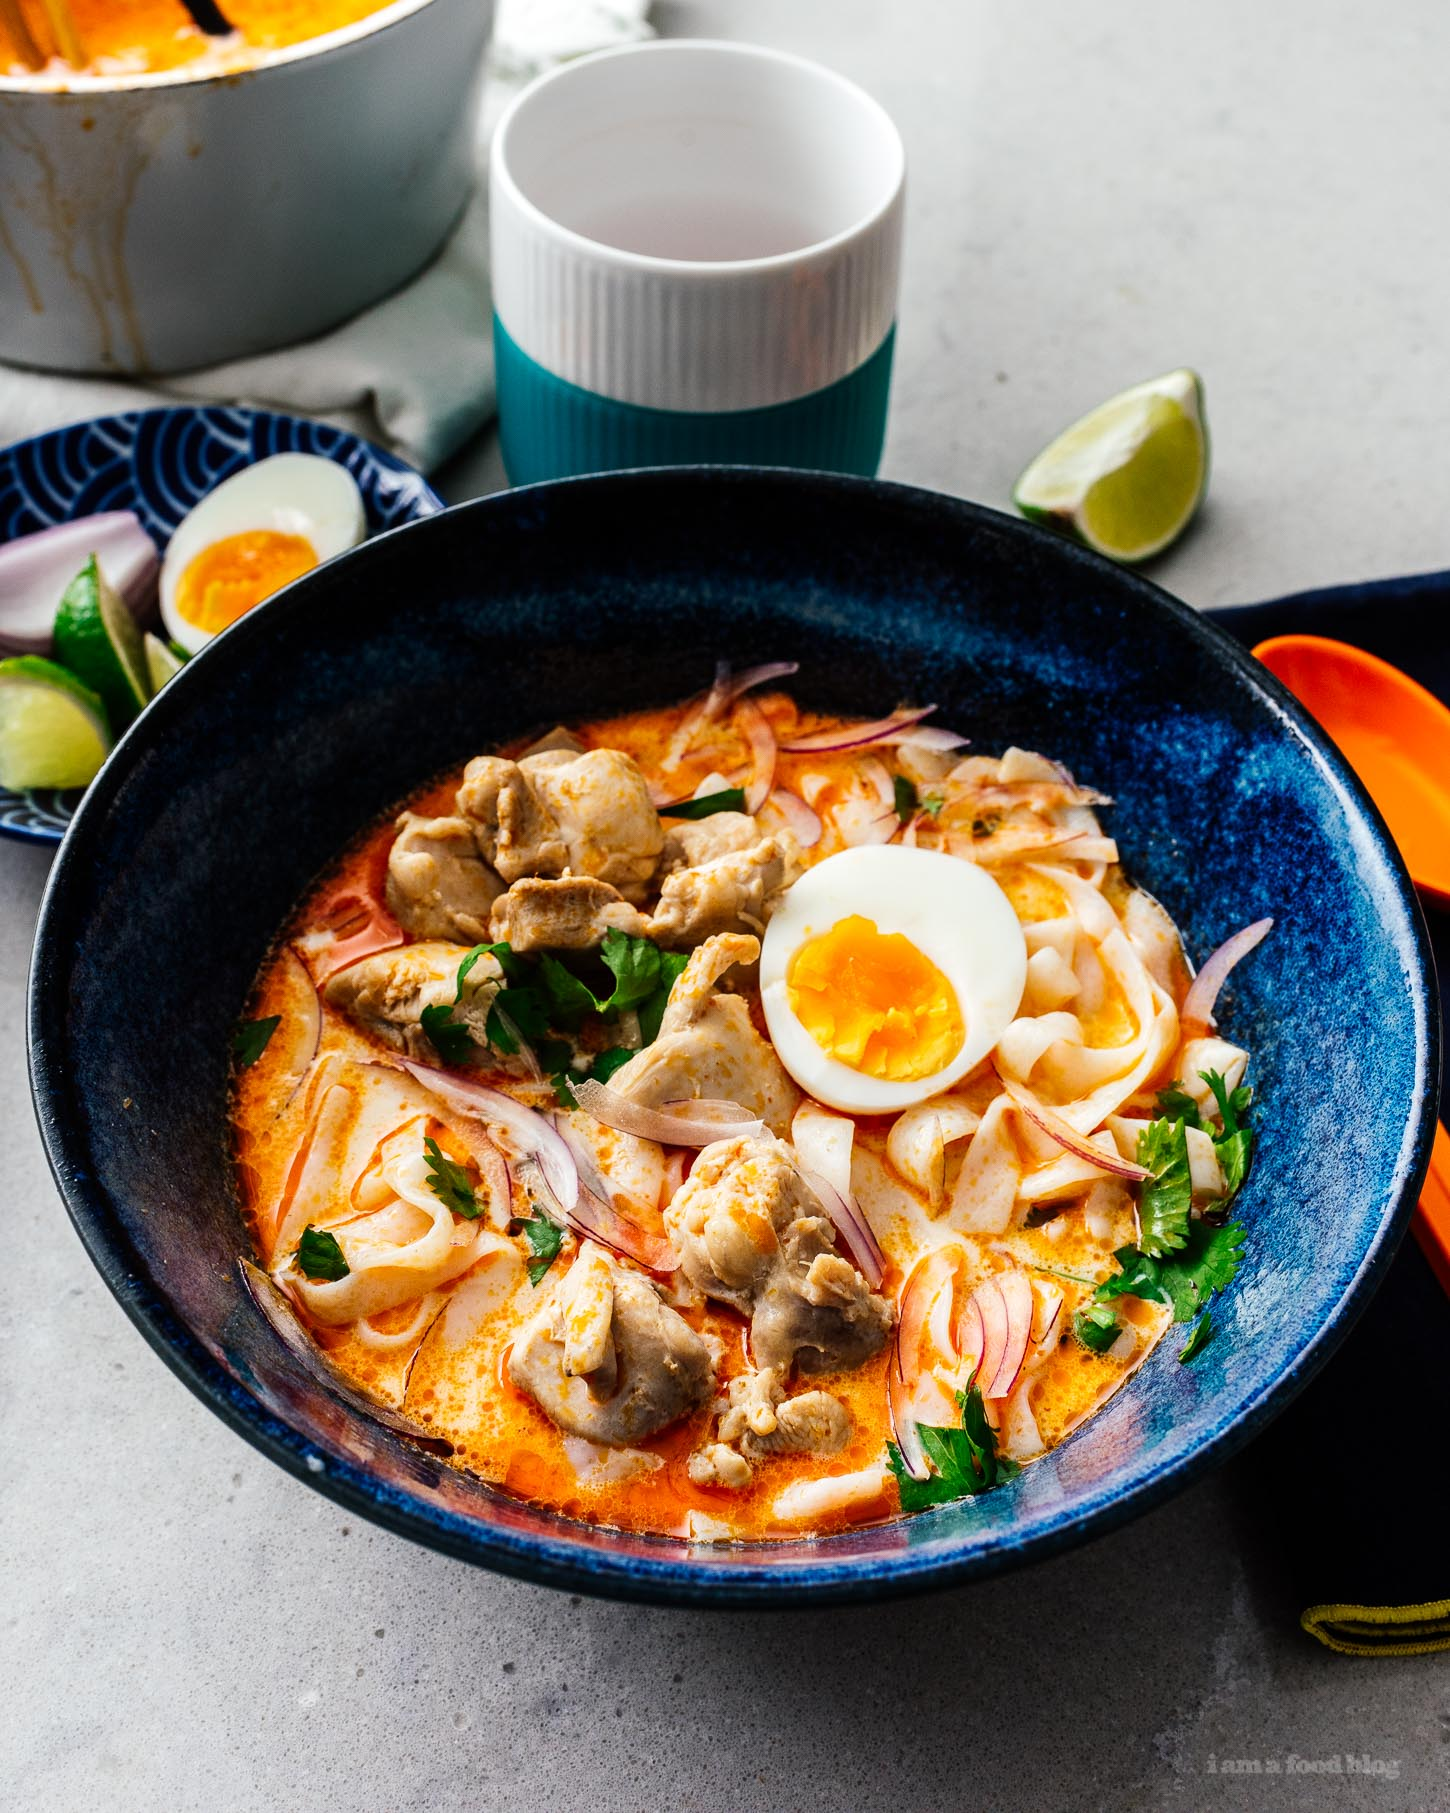 low carb keto-friendly thai red curry shirataki noodle soup #soup #thai #recipes #shirataki #curry #keto #lowcarb #keto recipes